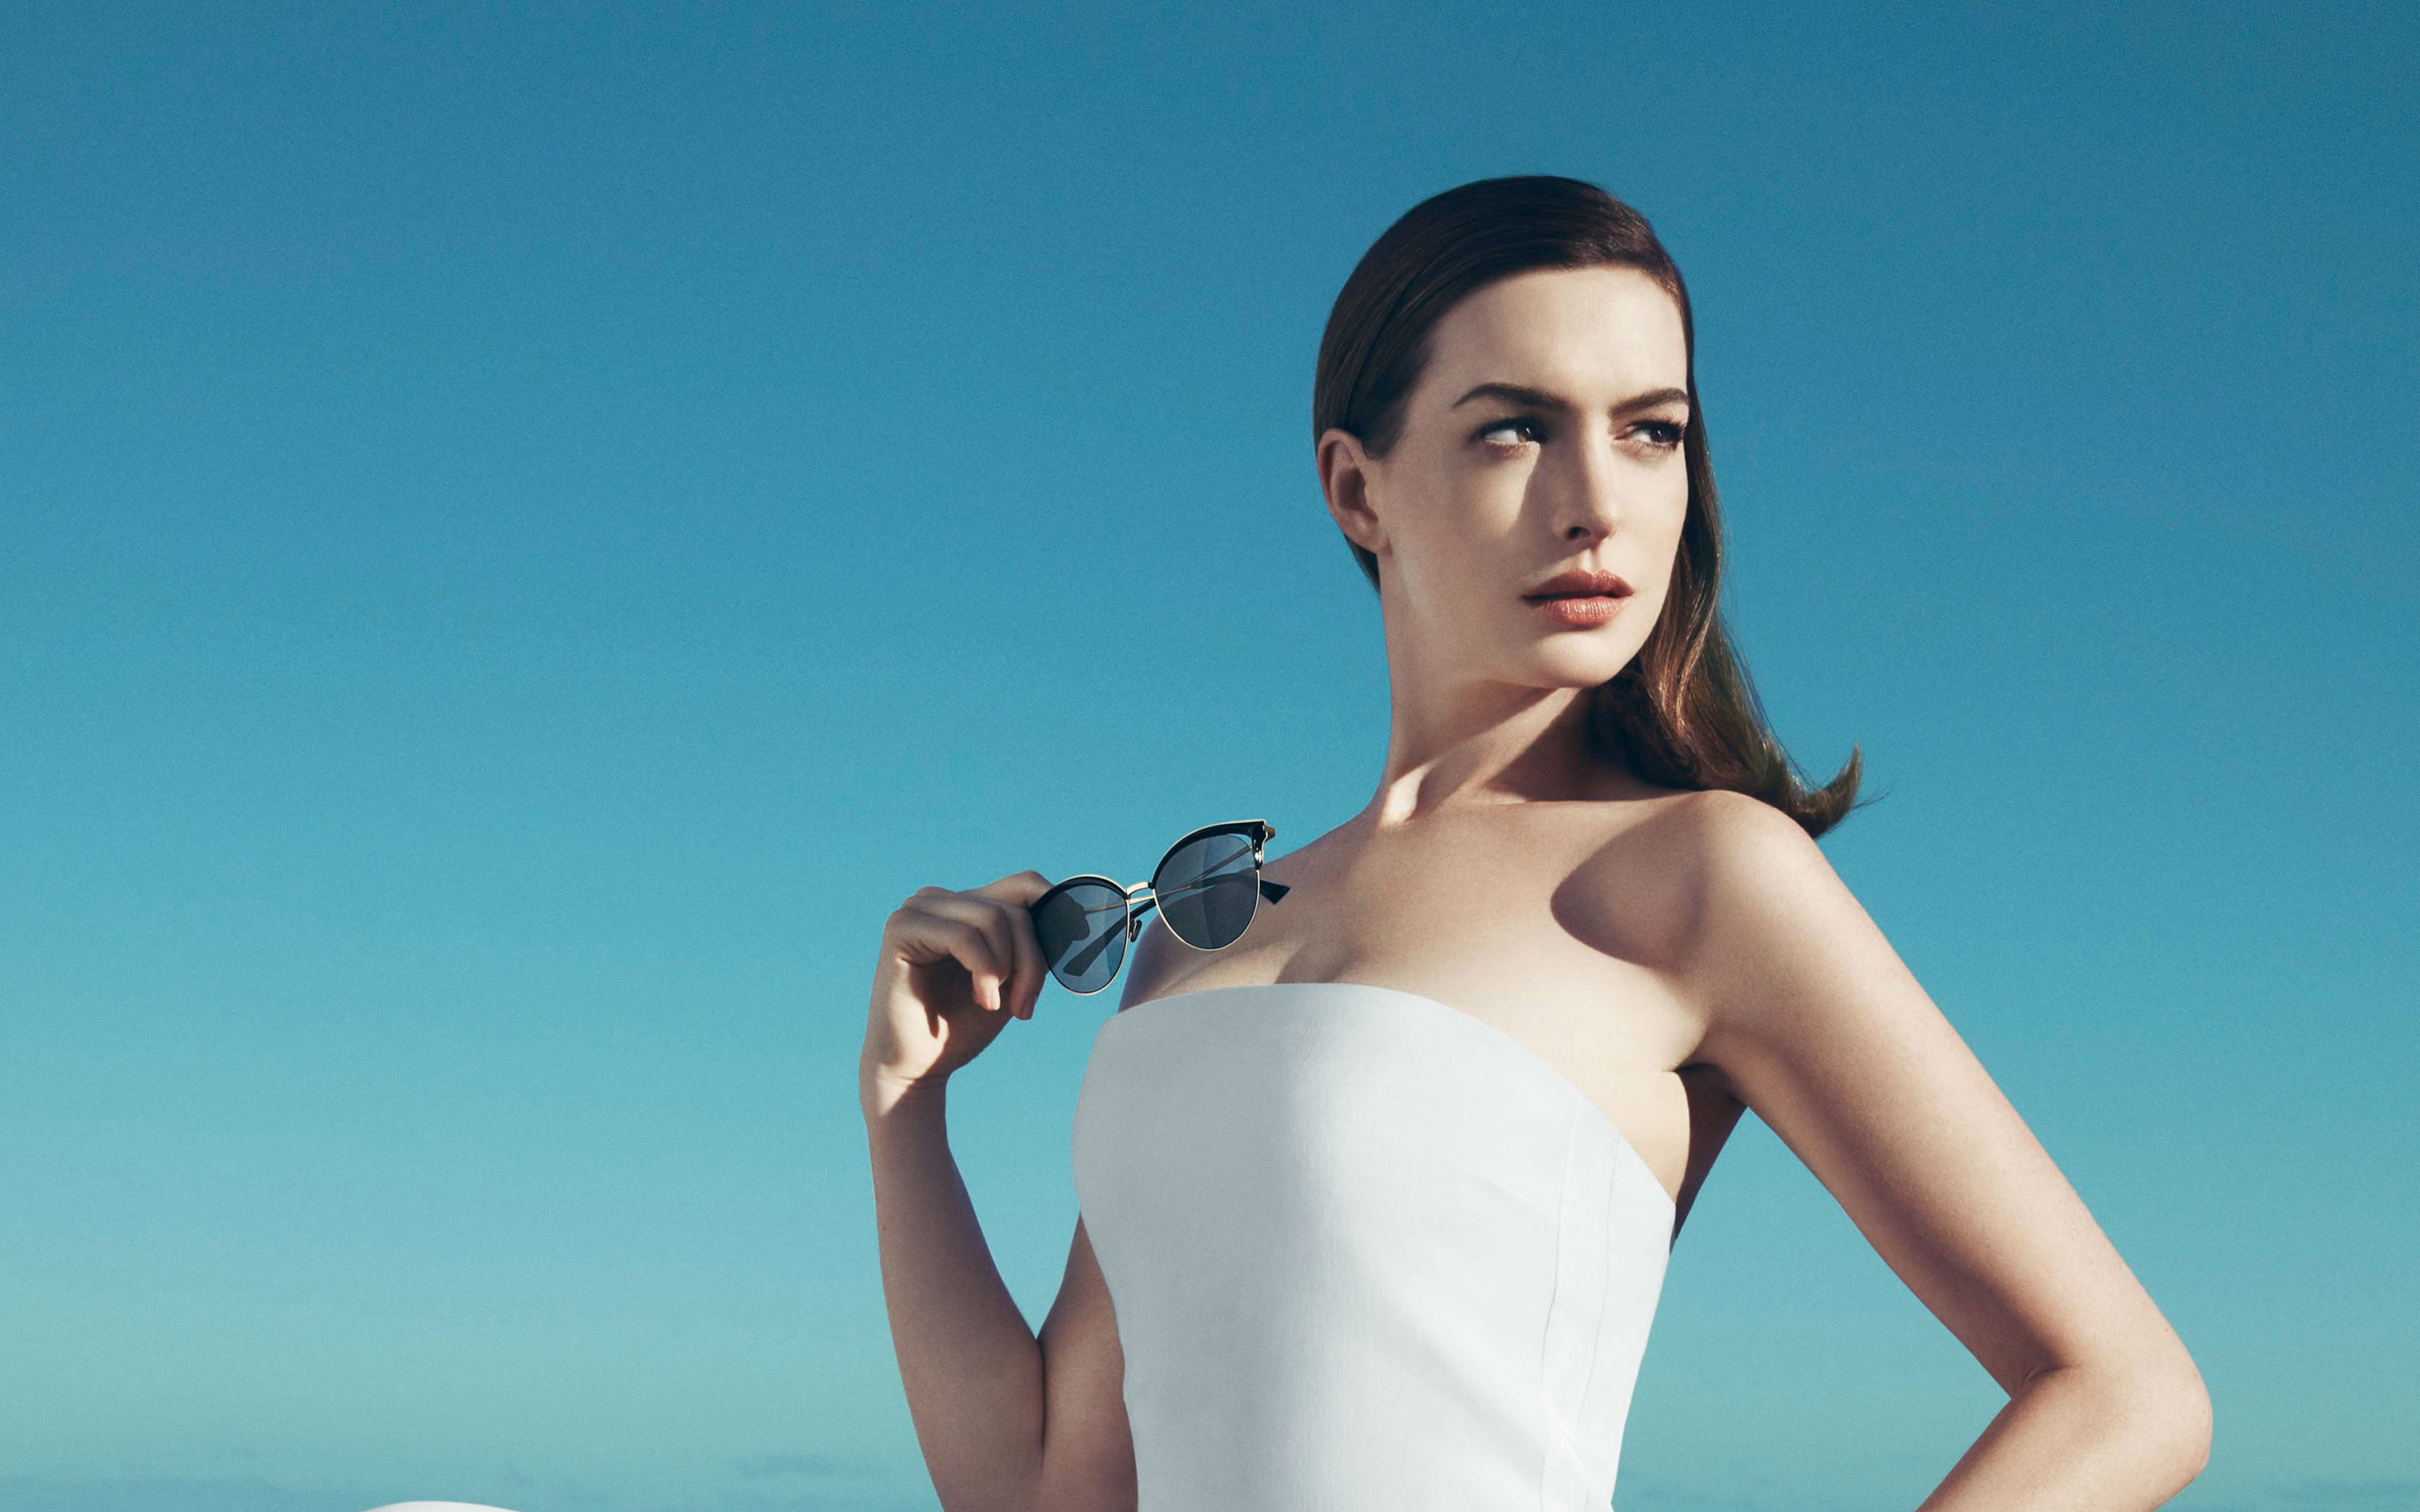 Glasses Anime Girl Wallpaper Anne Hathaway 2017 Wallpapers Hd Wallpapers Id 20052